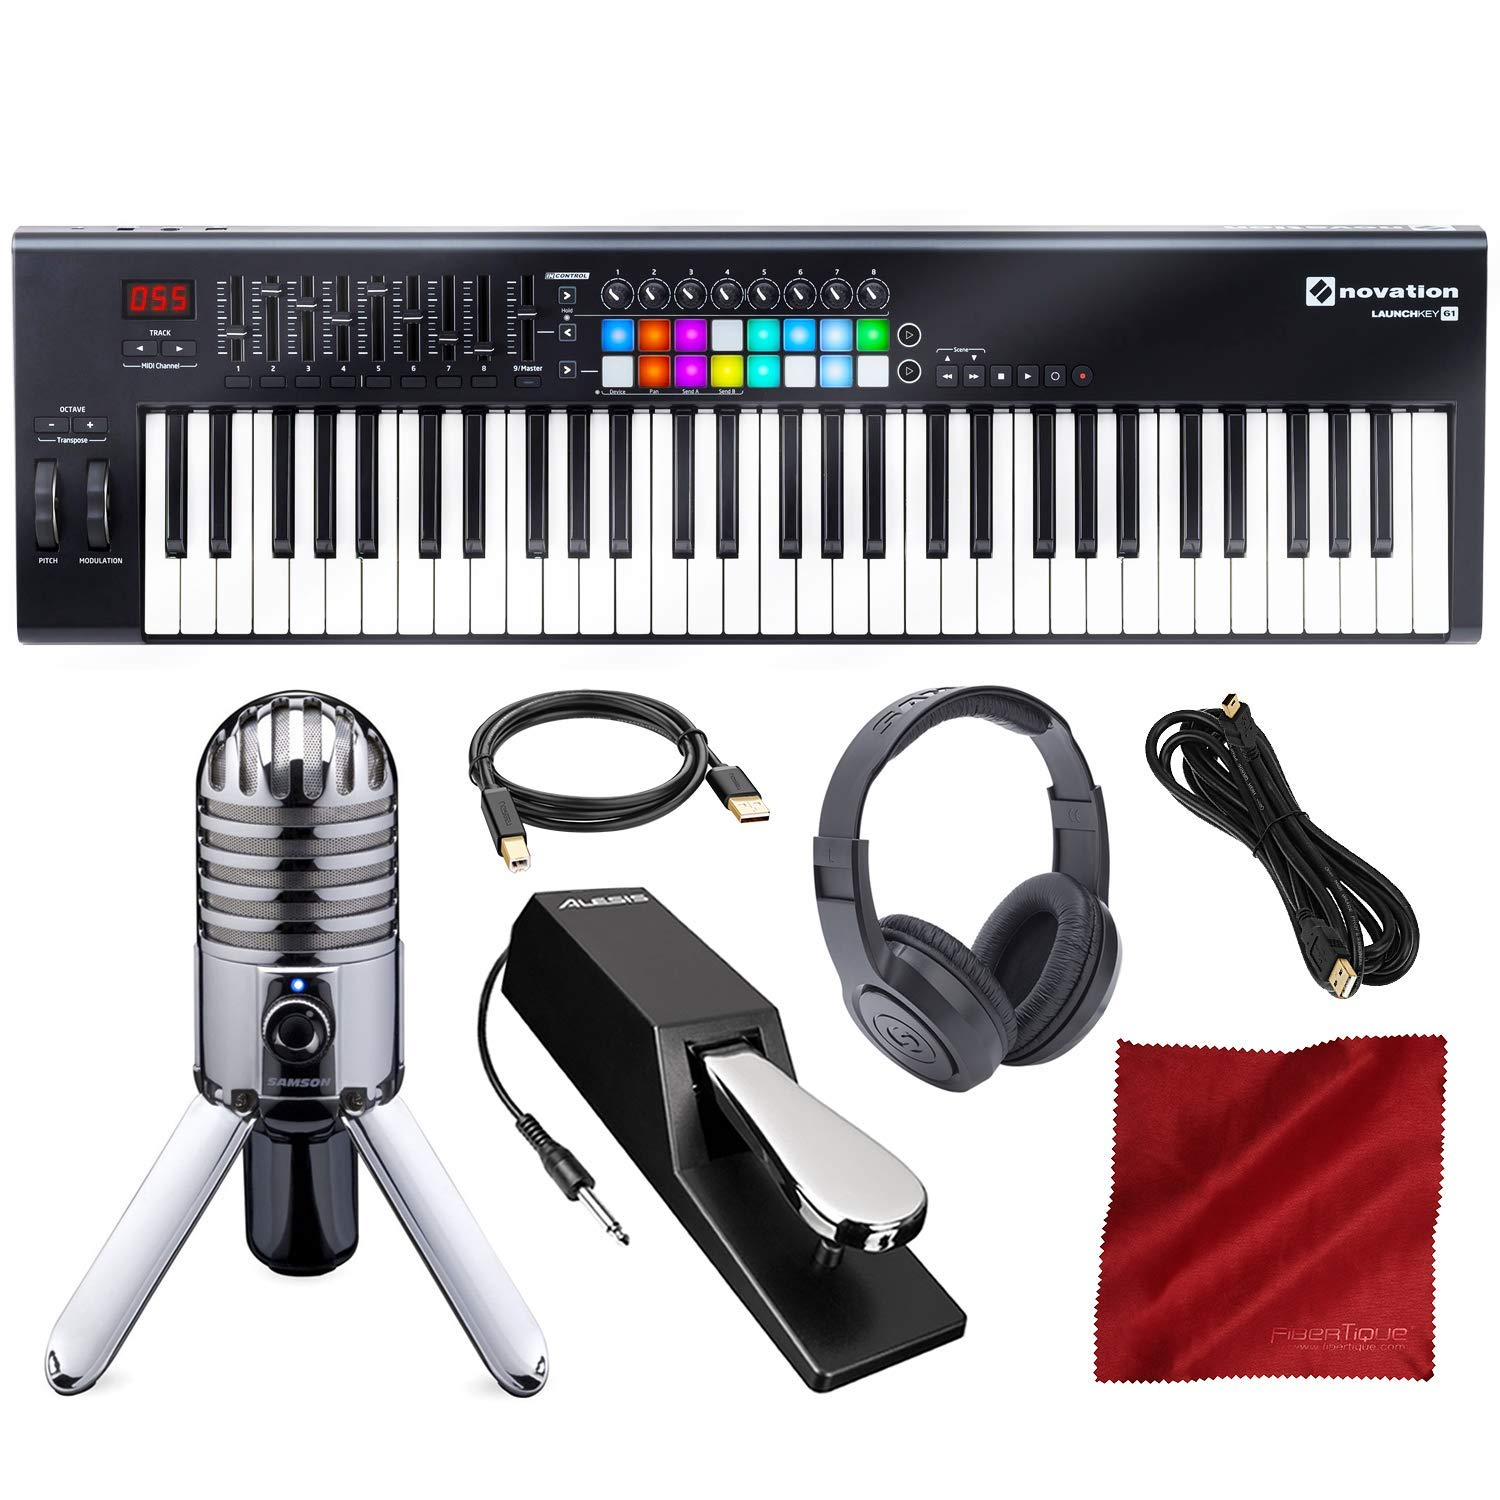 Novation Launchkey MK2 61-Key USB Keyboard Controller for Ableton Live with Microphone & Headphones Deluxe Bundle by Novation - Photo Savings